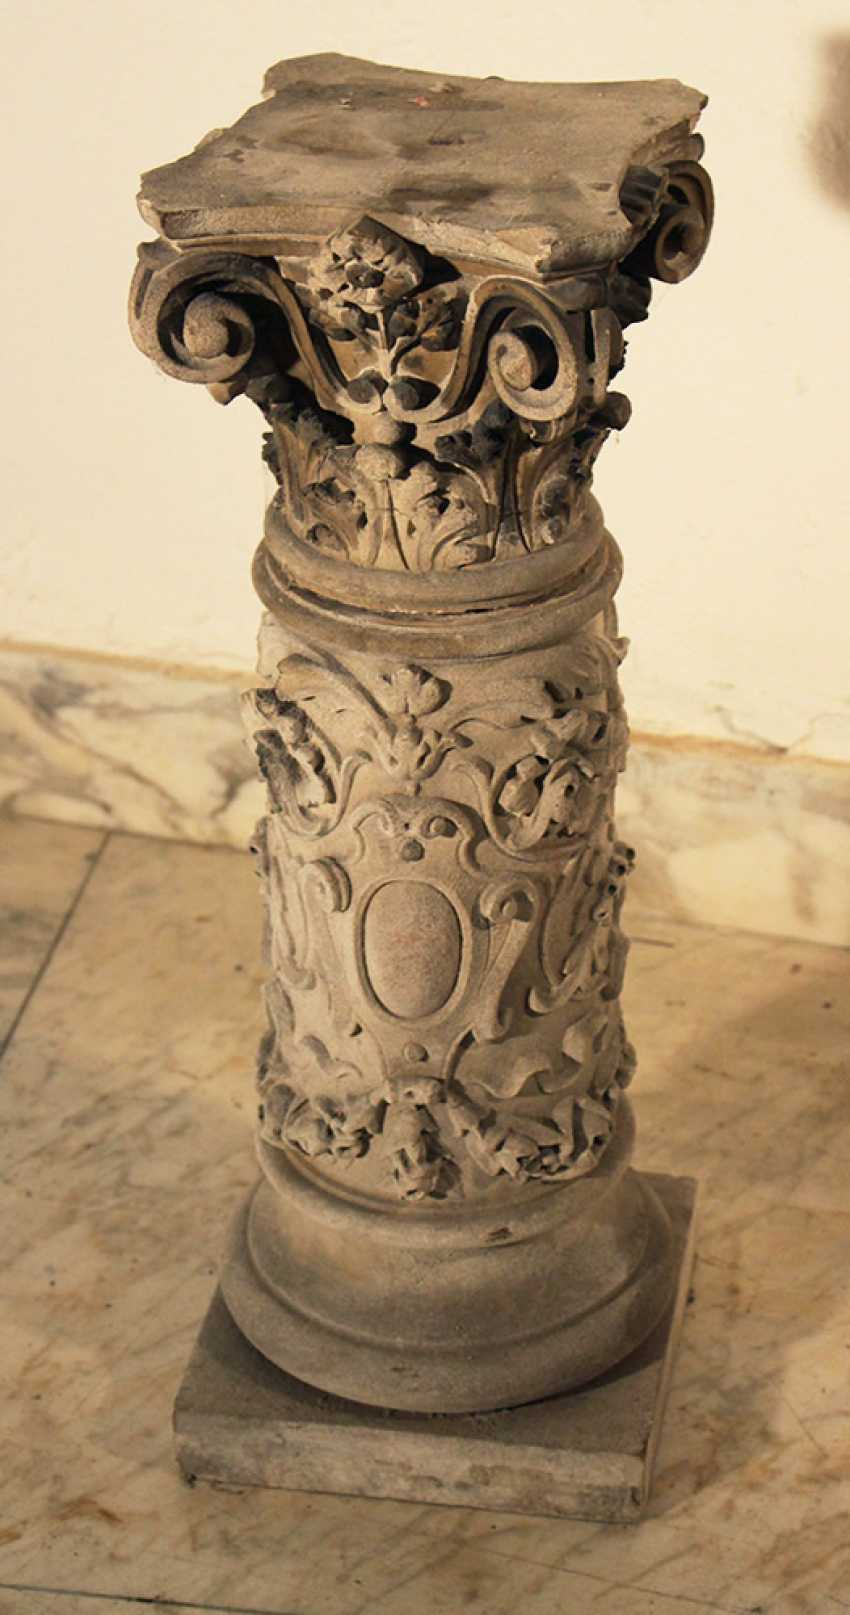 A small stone column with Corinthian capitel and floral sculpted decorations on quadratic plinth - photo 2